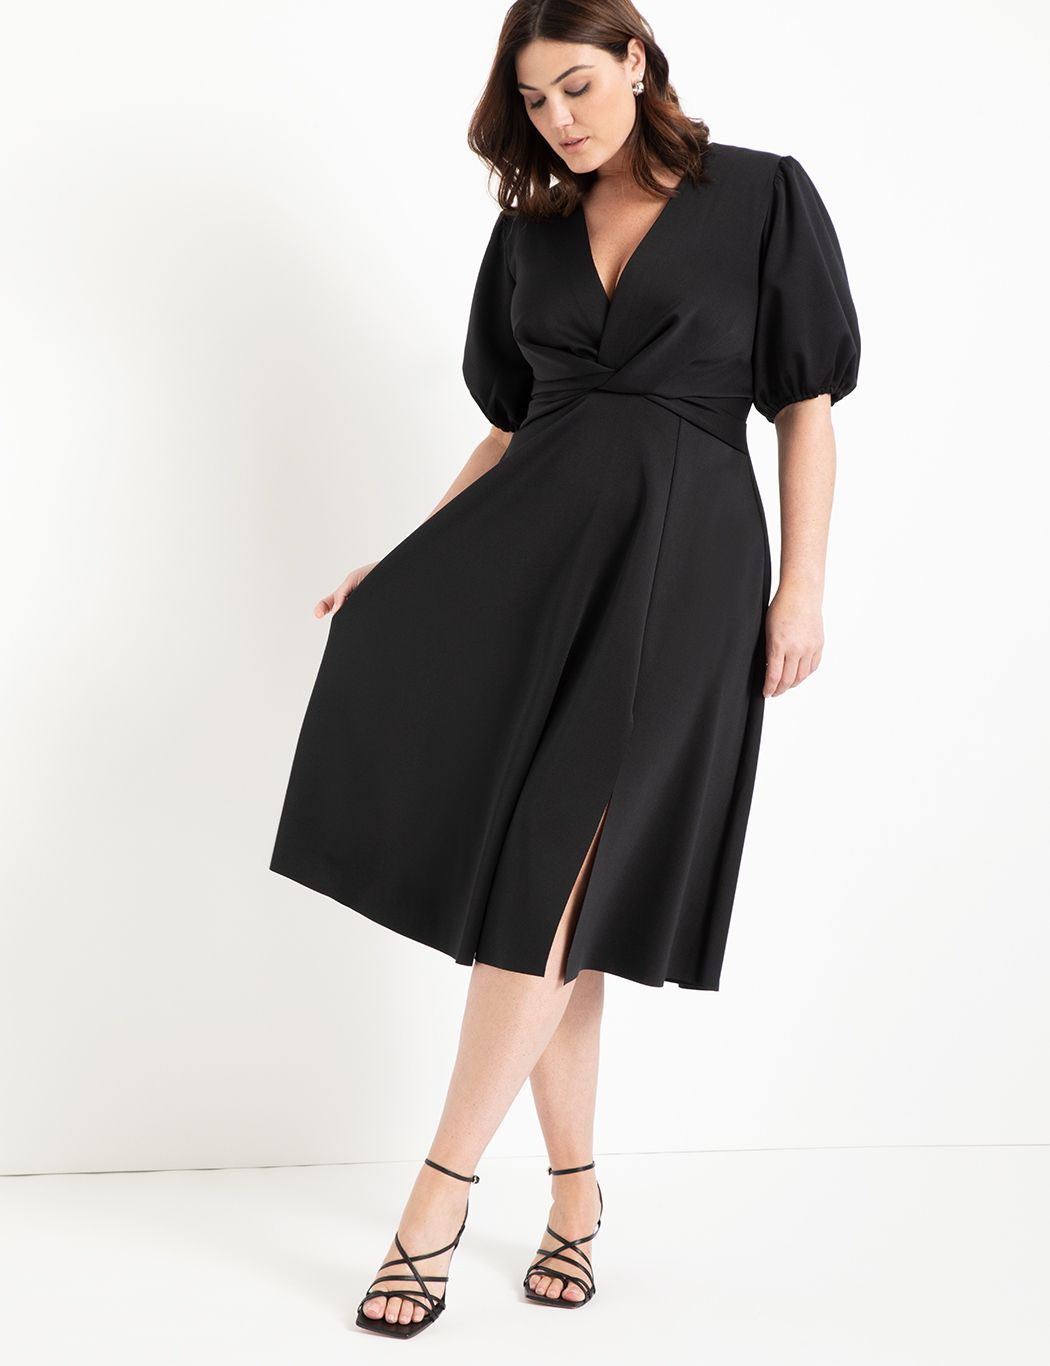 Puff Sleeve Fit And Flare Dress Women S Plus Size Dresses Eloquii Plus Size Maxi Dresses Plus Size Dresses Bridesmaid Dresses Plus Size [ 1366 x 1050 Pixel ]